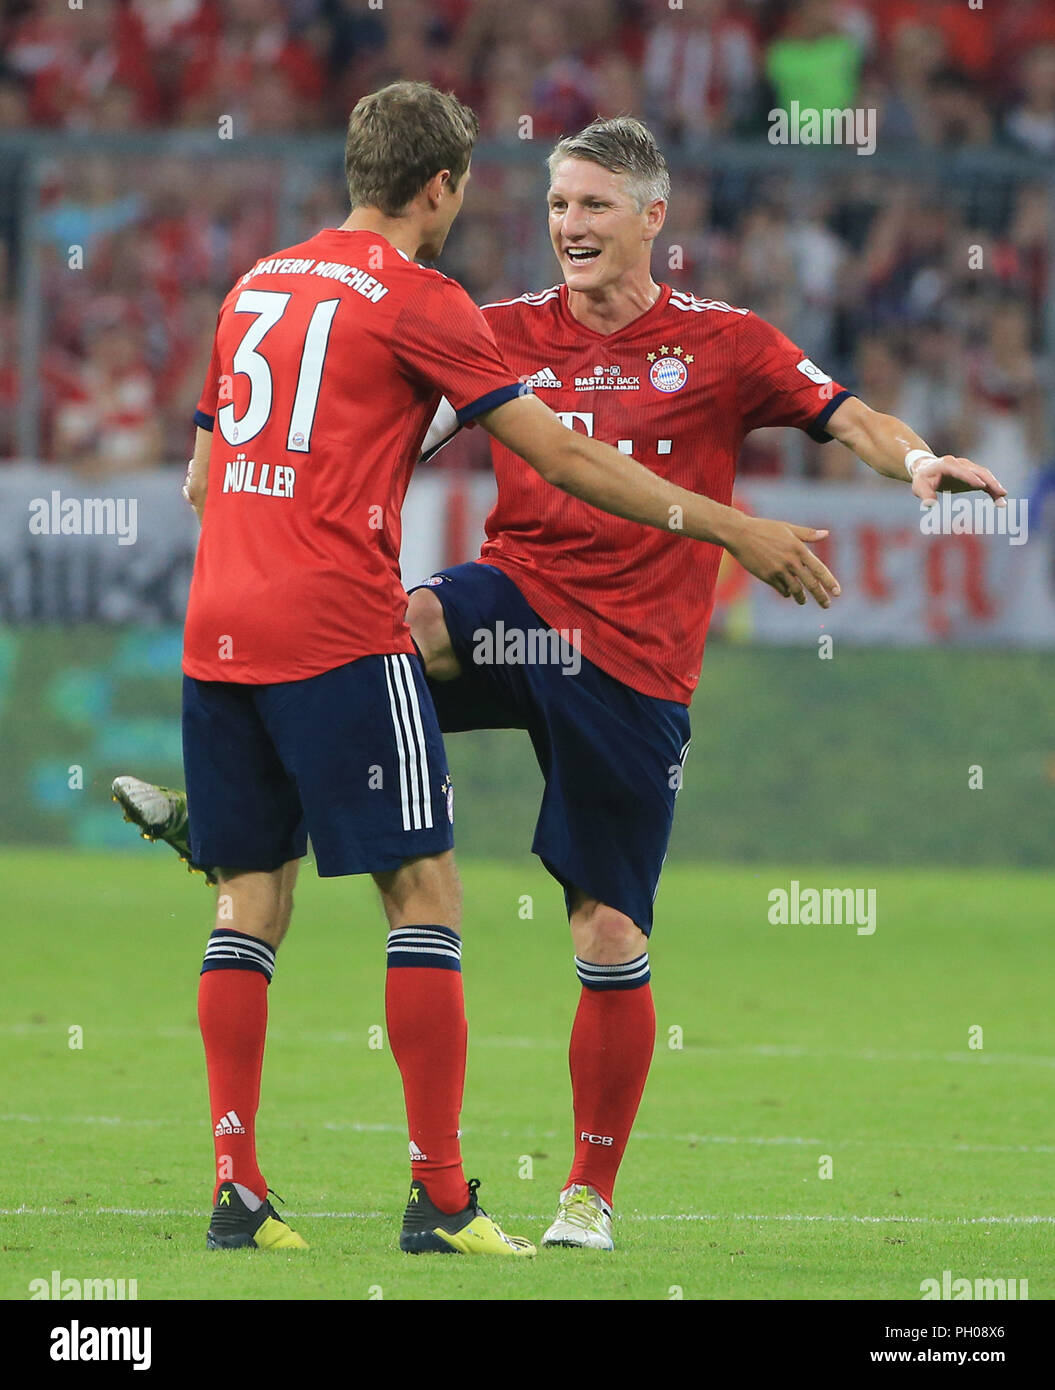 Munich, Germany  28th August 2018  28 08 2018, Farewell Game